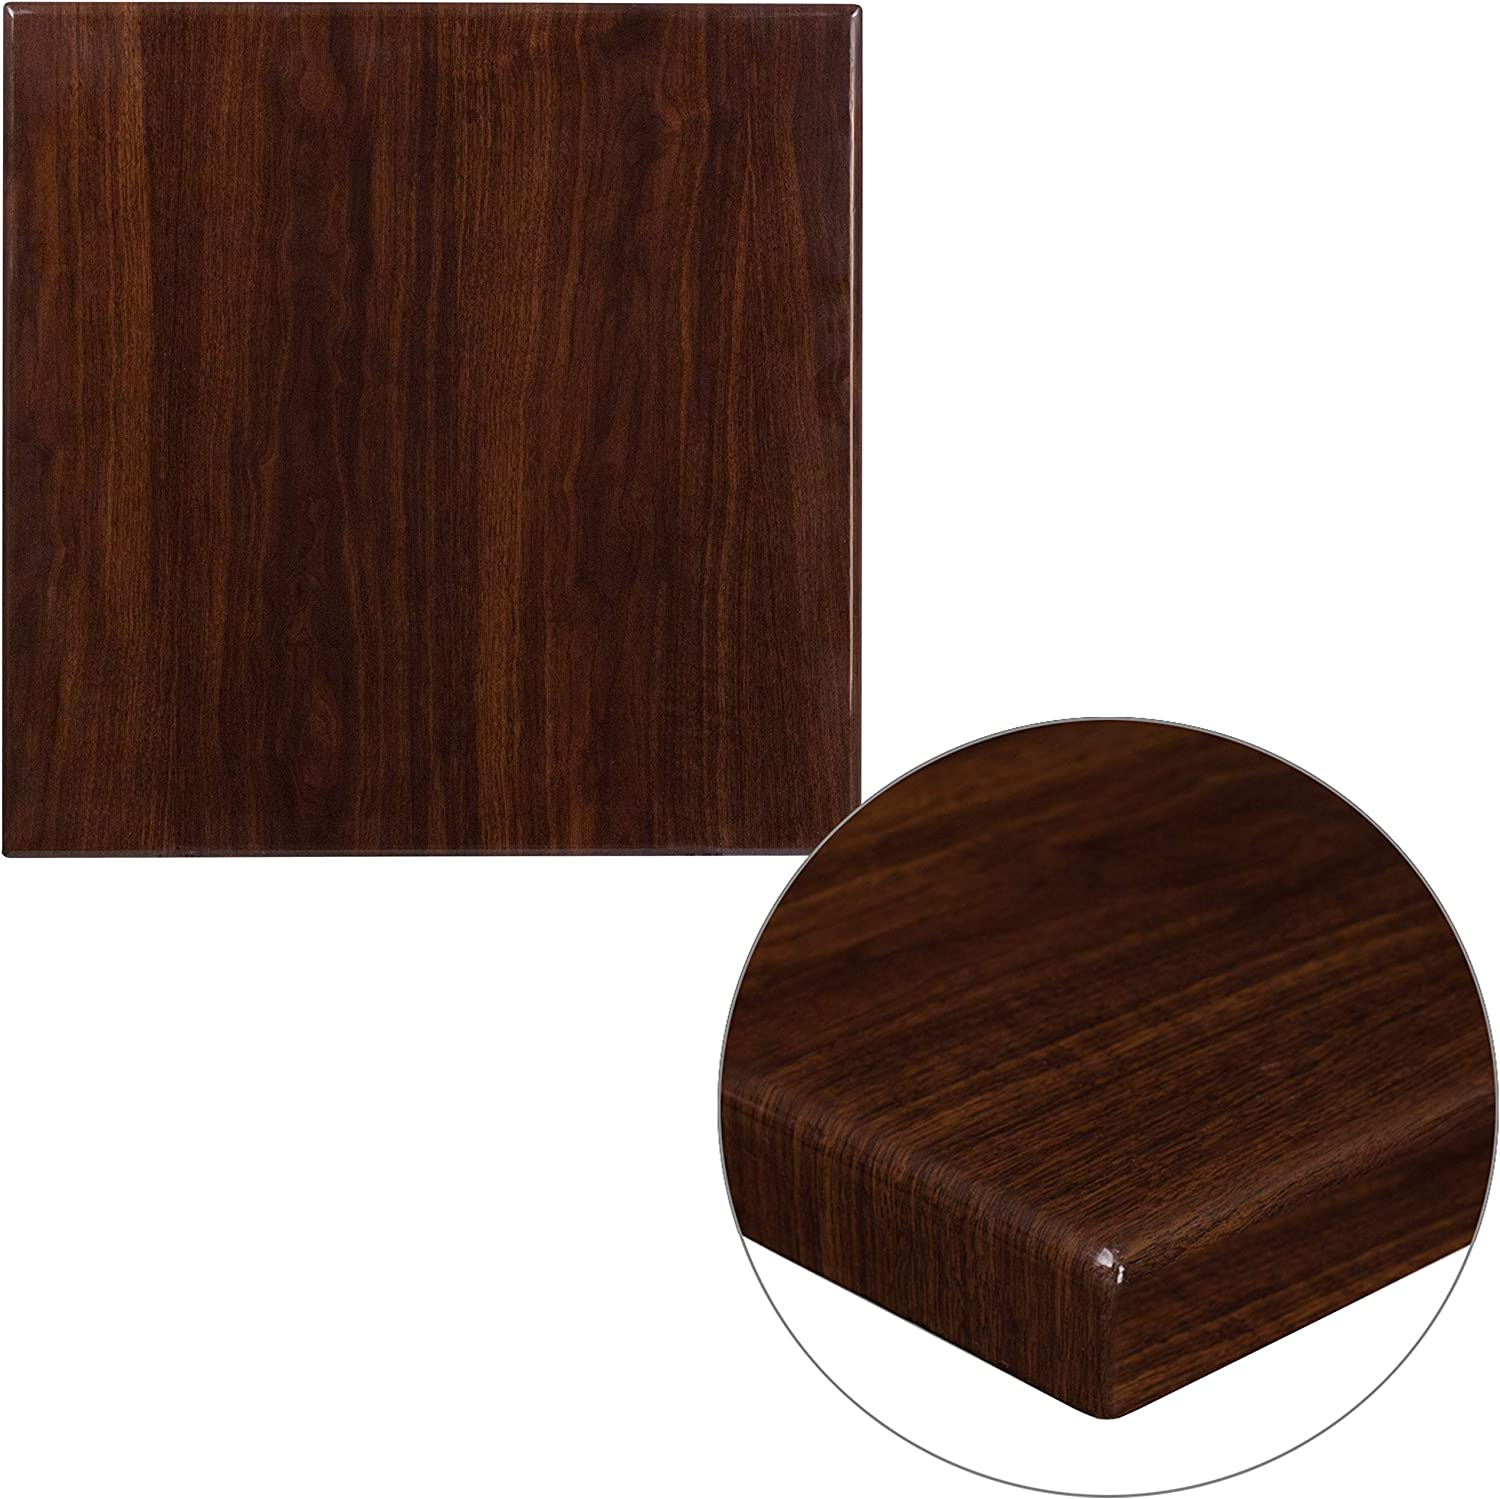 Flash Furniture 24'' Square High-Gloss Walnut Resin Table Top with 2'' Thick Drop-Lip